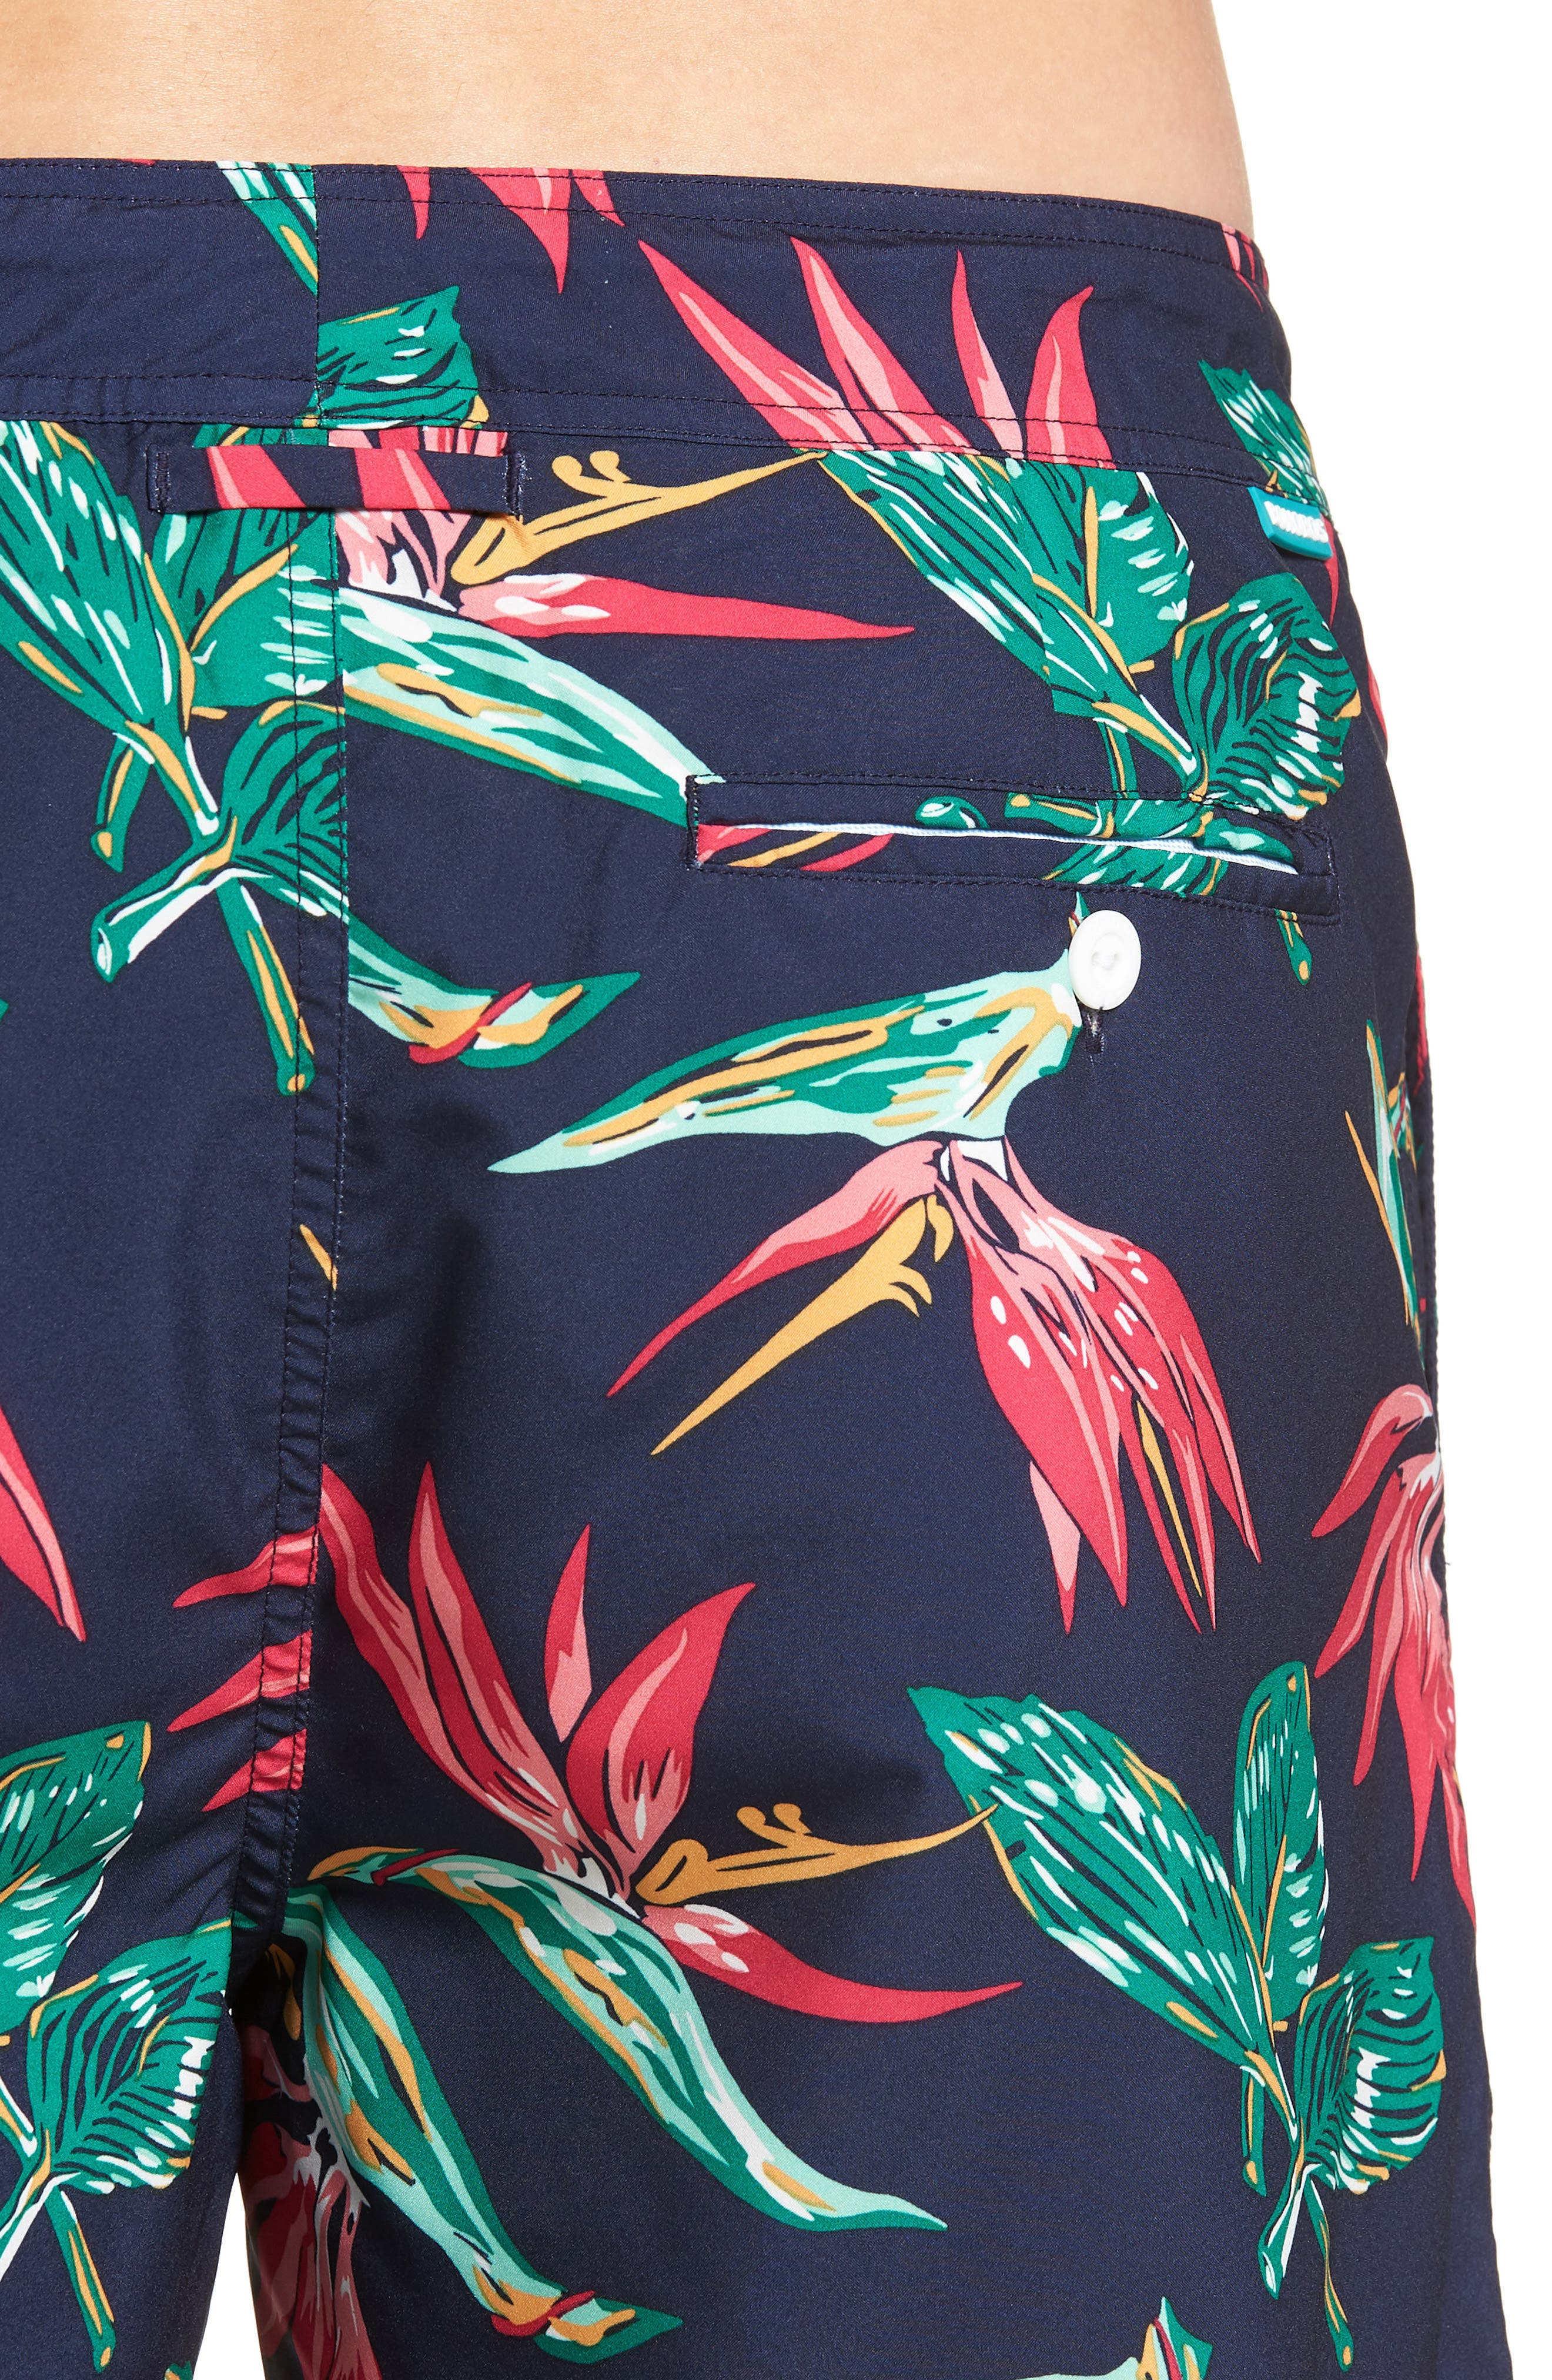 Banzai 9-Inch Swim Trunks,                             Alternate thumbnail 4, color,                             BIRD OF PARADISE